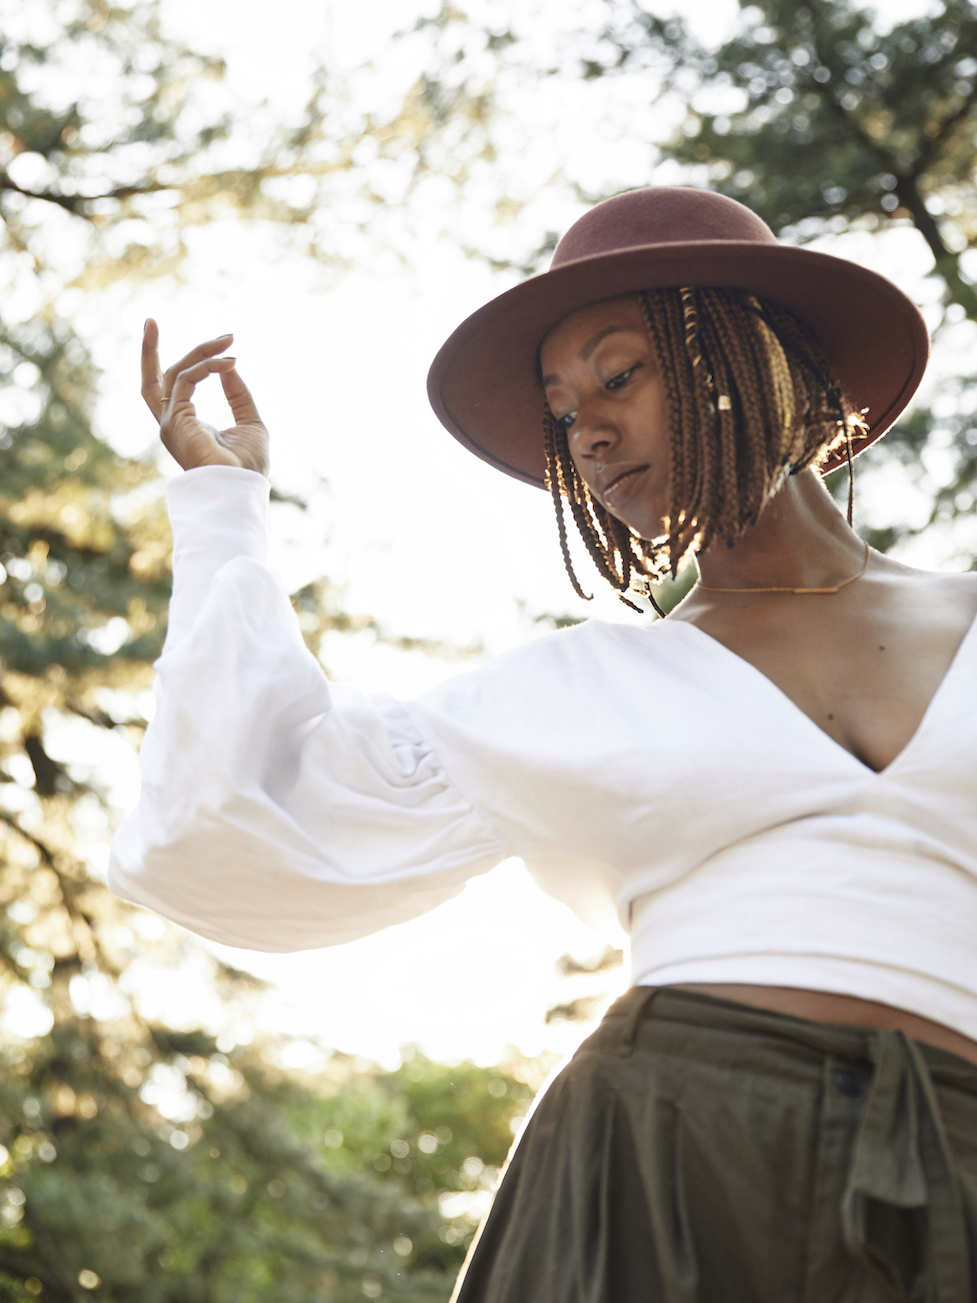 Statement bell sleeves on a white top // A Week Of Outfits With Dominique Drakeford, Founder Of Melanin & Sustainable Style on The Good Trade